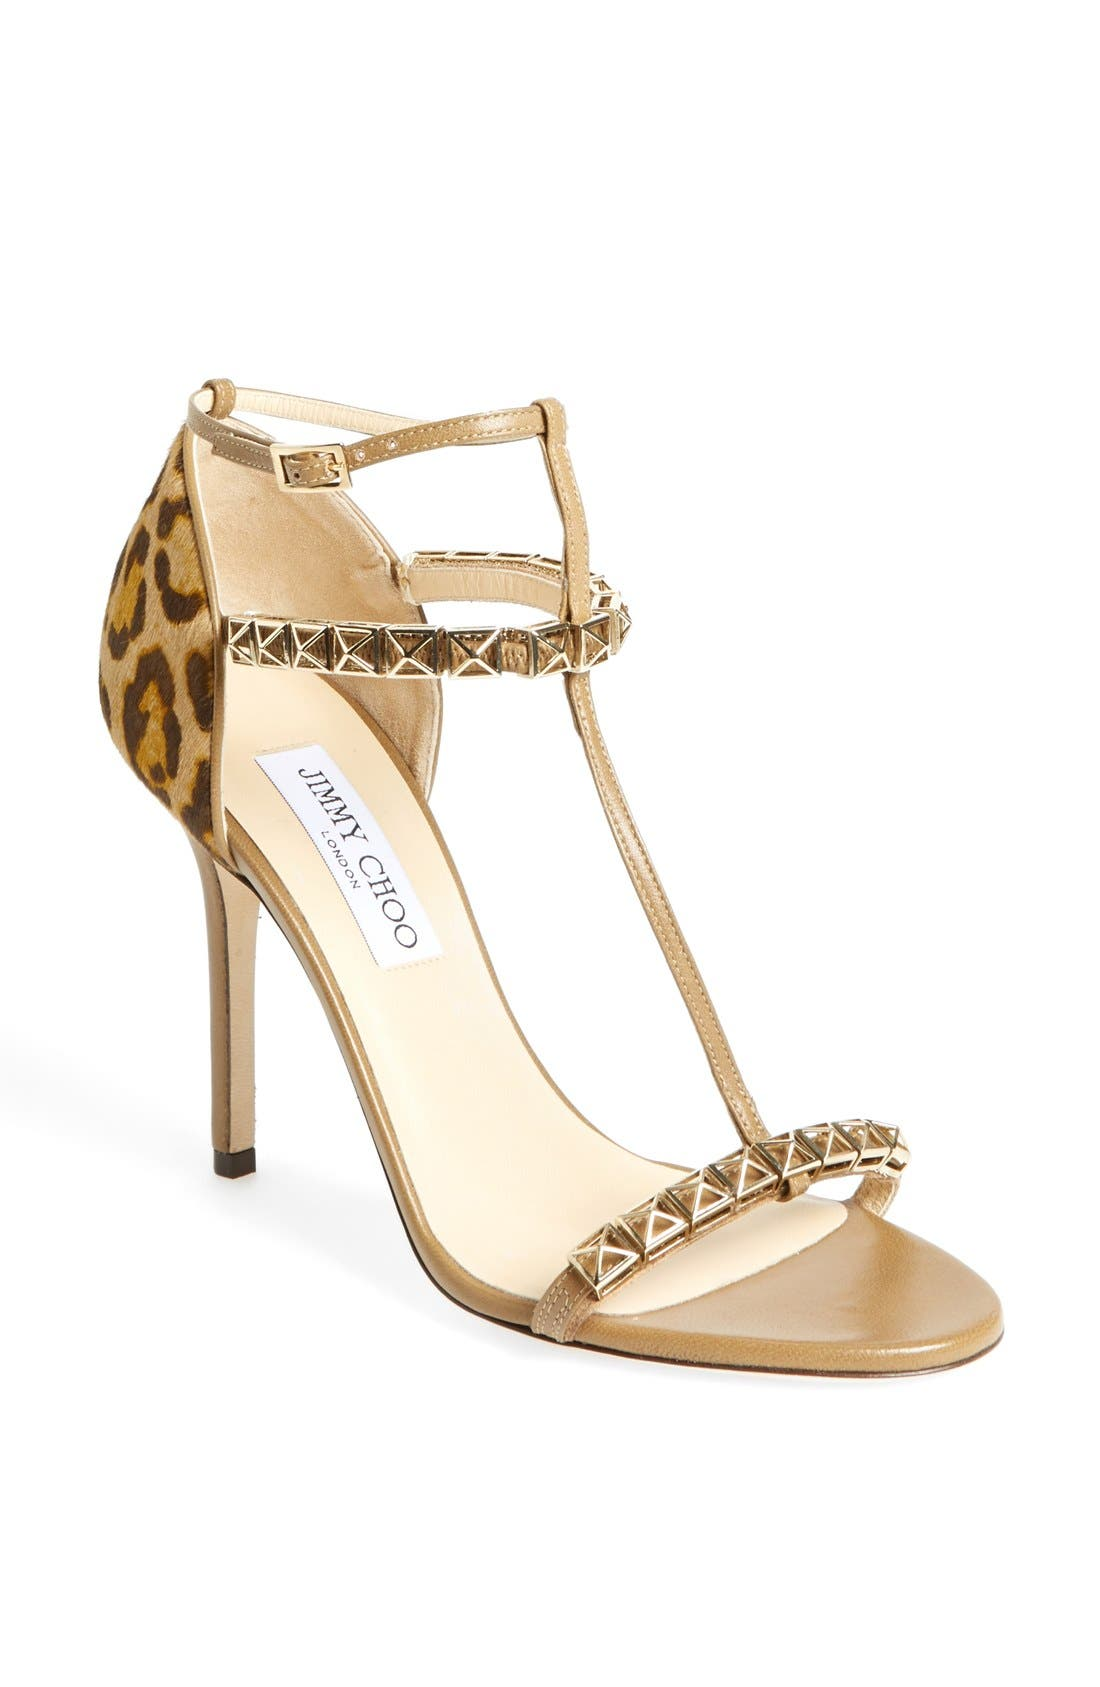 Alternate Image 1 Selected - Jimmy Choo 'Flint' Studded T-Strap Calf Hair Sandal